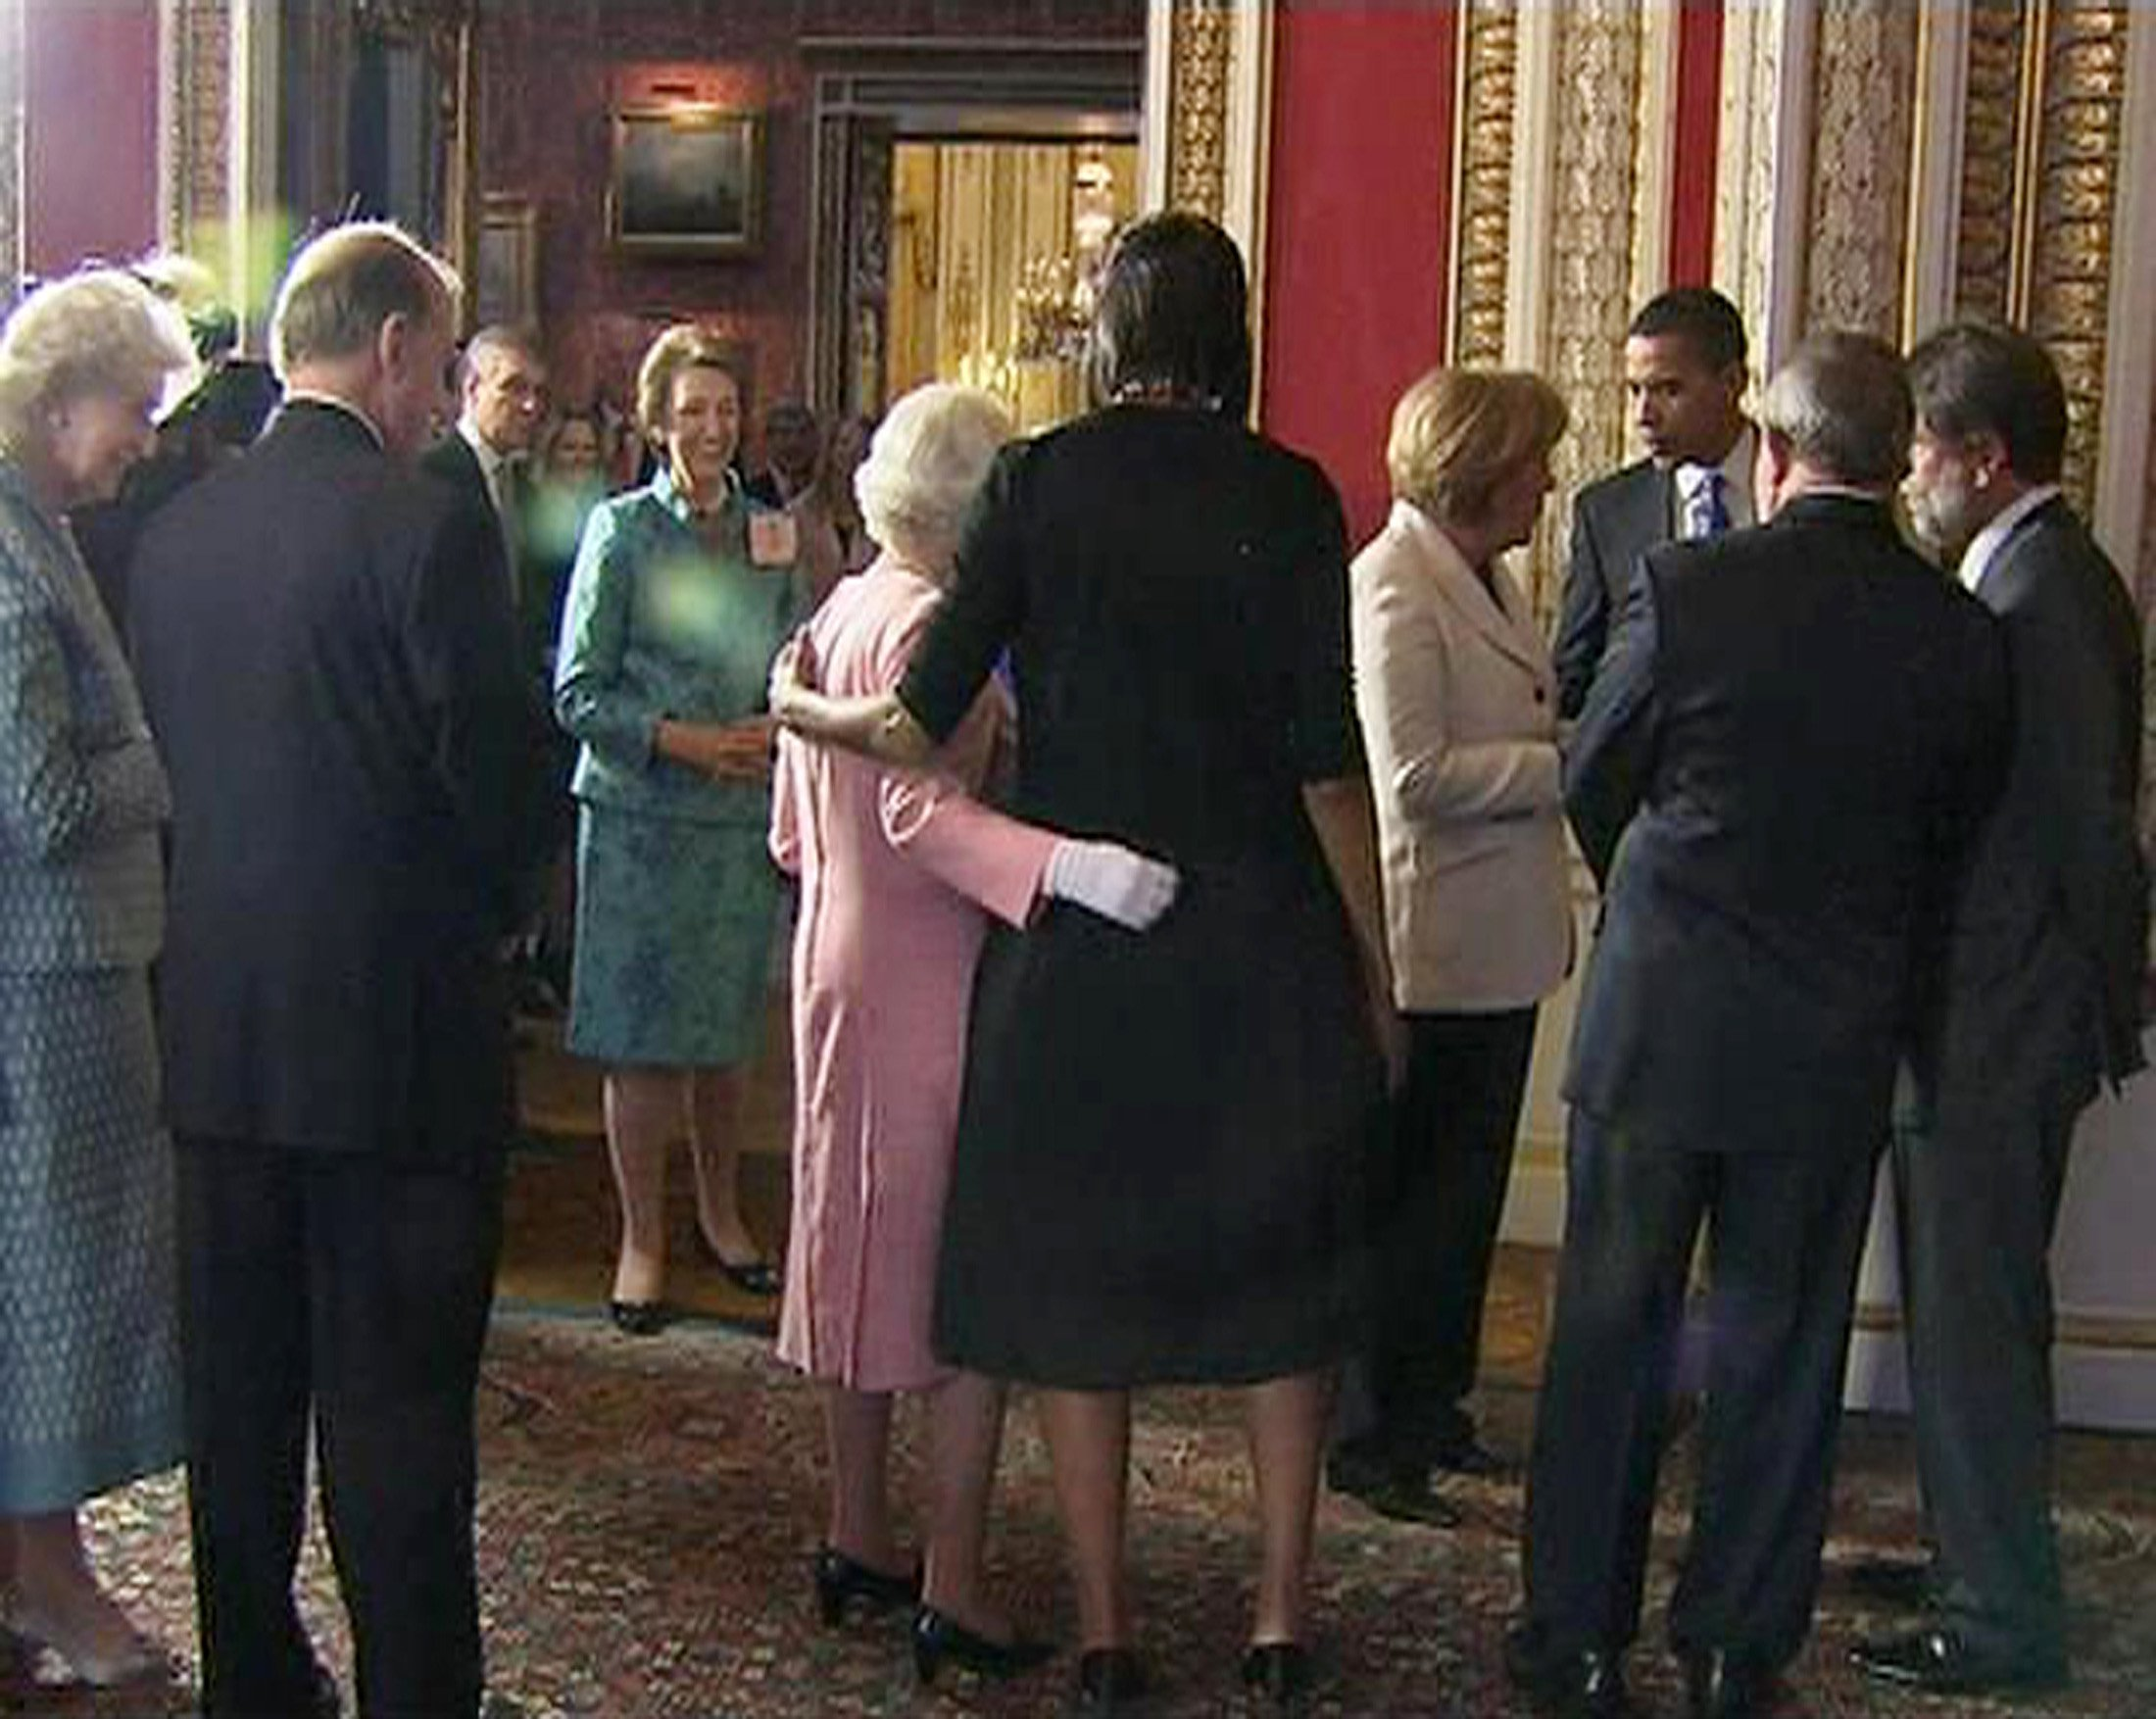 A video grab from television footage shows U.S. first lady Michelle Obama (C) standing with Britain's Queen Elizabeth during a reception for G20 leaders at Buckingham Palace in London April 1, 2009. World leaders arrived in London on Wednesday ahead of a G20 summit meeting under intense pressure to produce a morale-boosting response to the worst economic downturn since the 1930s. REUTERS/POOL via Reuters Tv (BRITAIN BUSINESS POLITICS ROYALS) FOR EDITORIAL USE ONLY. NOT FOR SALE FOR MARKETING OR ADVERTISING CAMPAIGNS - GM1E5421E0Q01